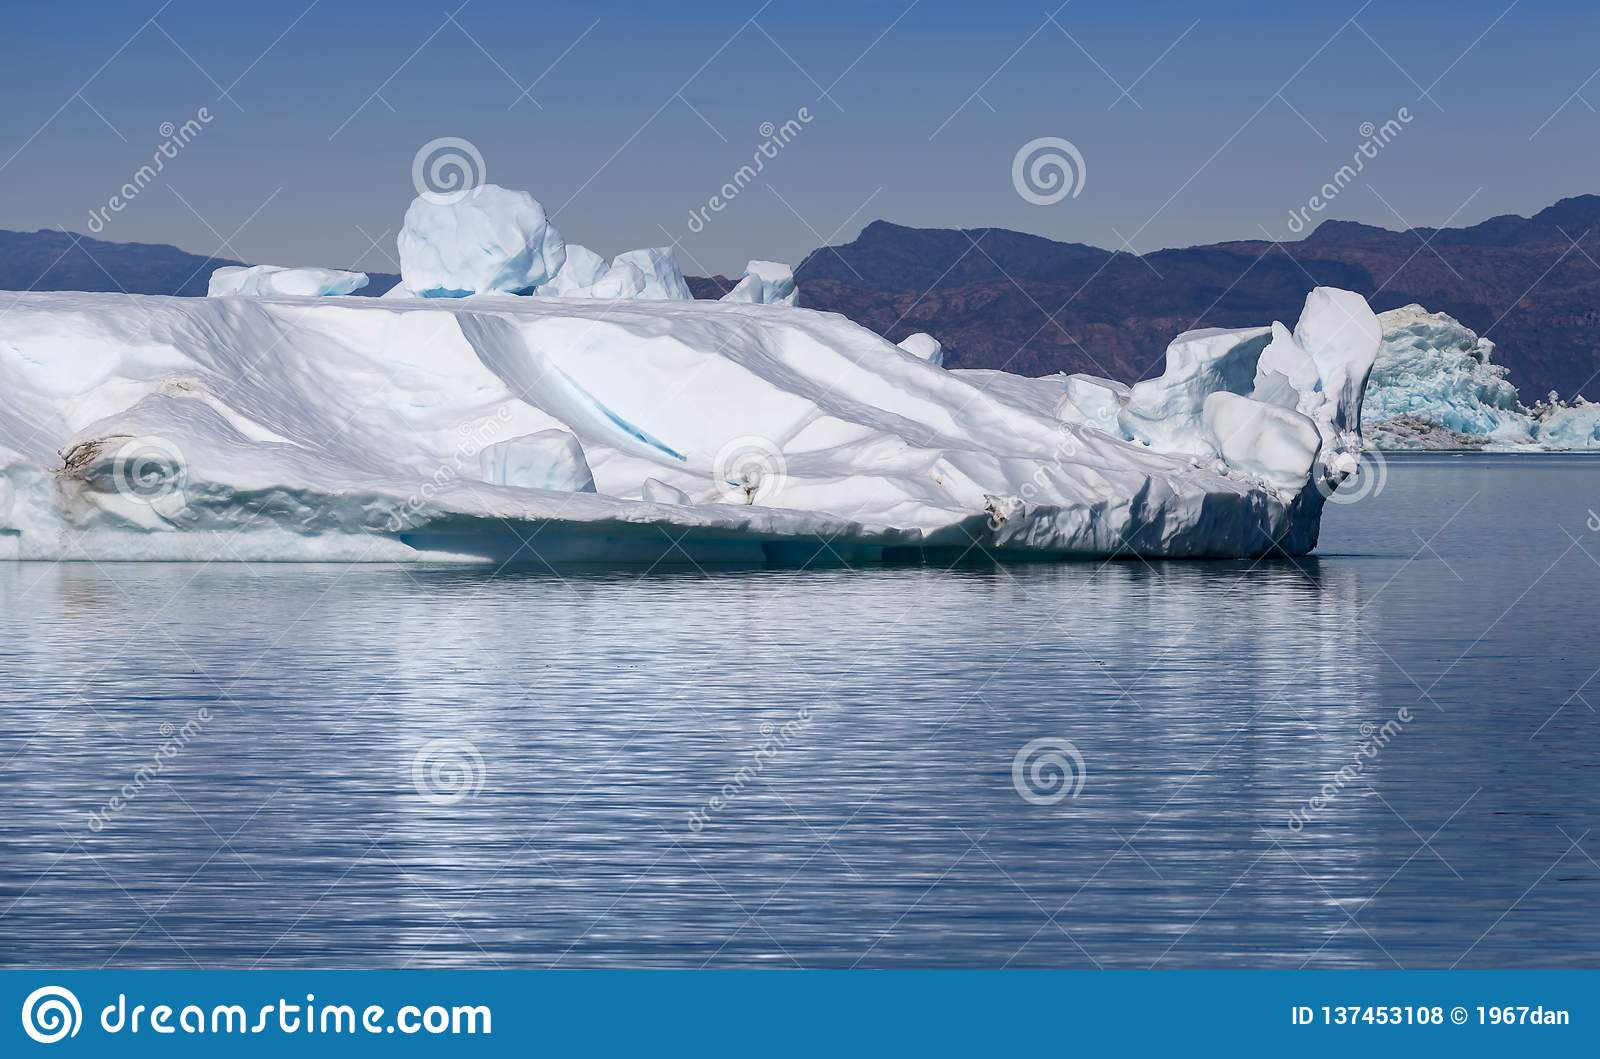 Ices and icebergs of polar regions of Earth.